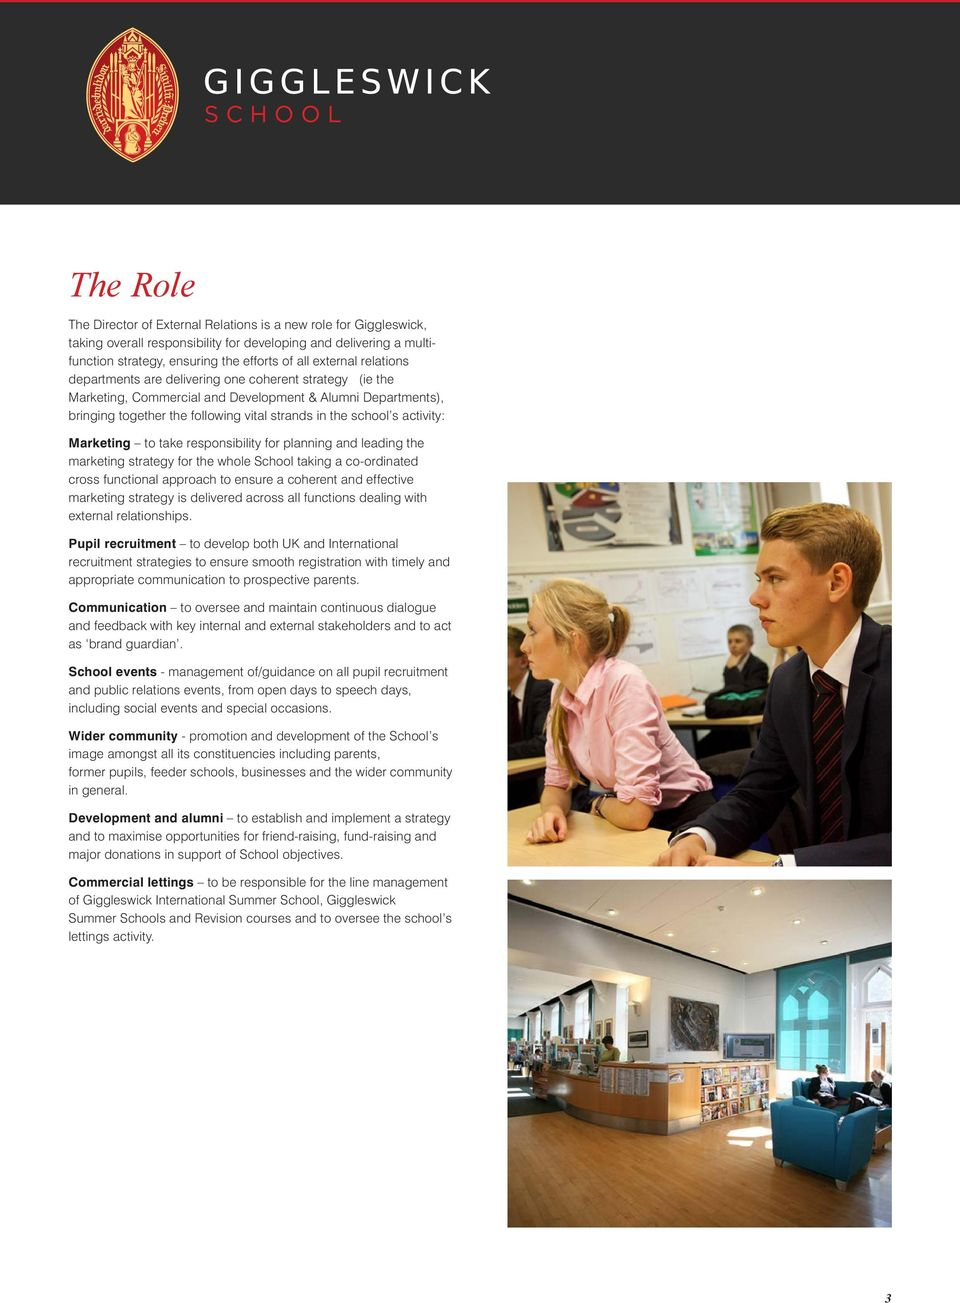 Marketing to take responsibility for planning and leading the marketing strategy for the whole School taking a co-ordinated cross functional approach to ensure a coherent and effective marketing